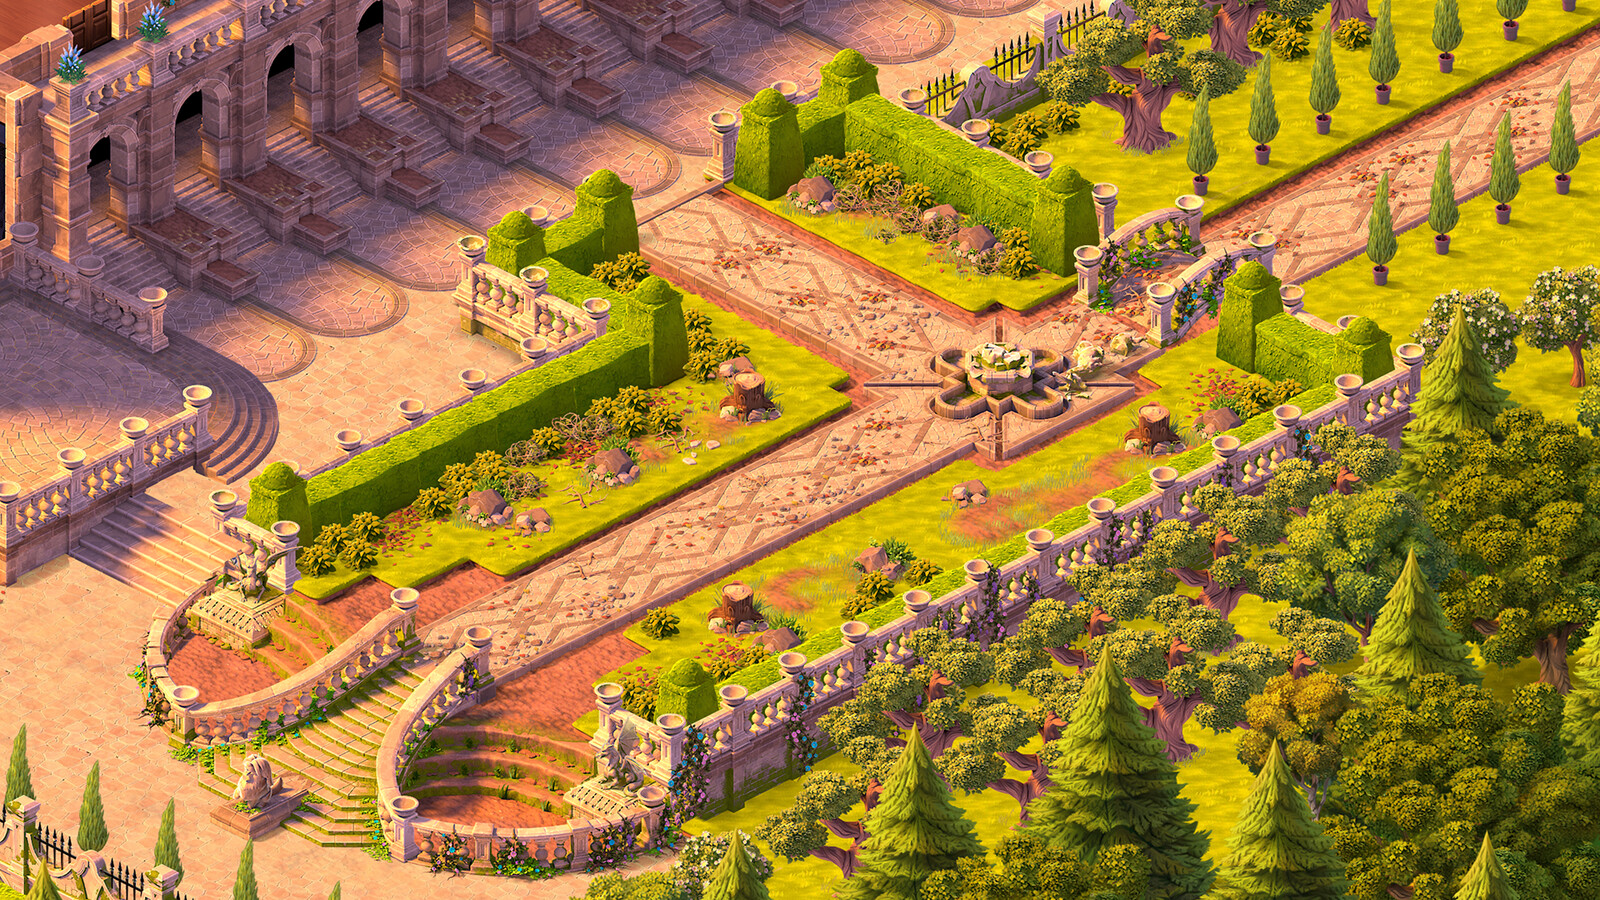 Another area I assembled for the game. I was responsible for modelling most of the assets other than the foliage.